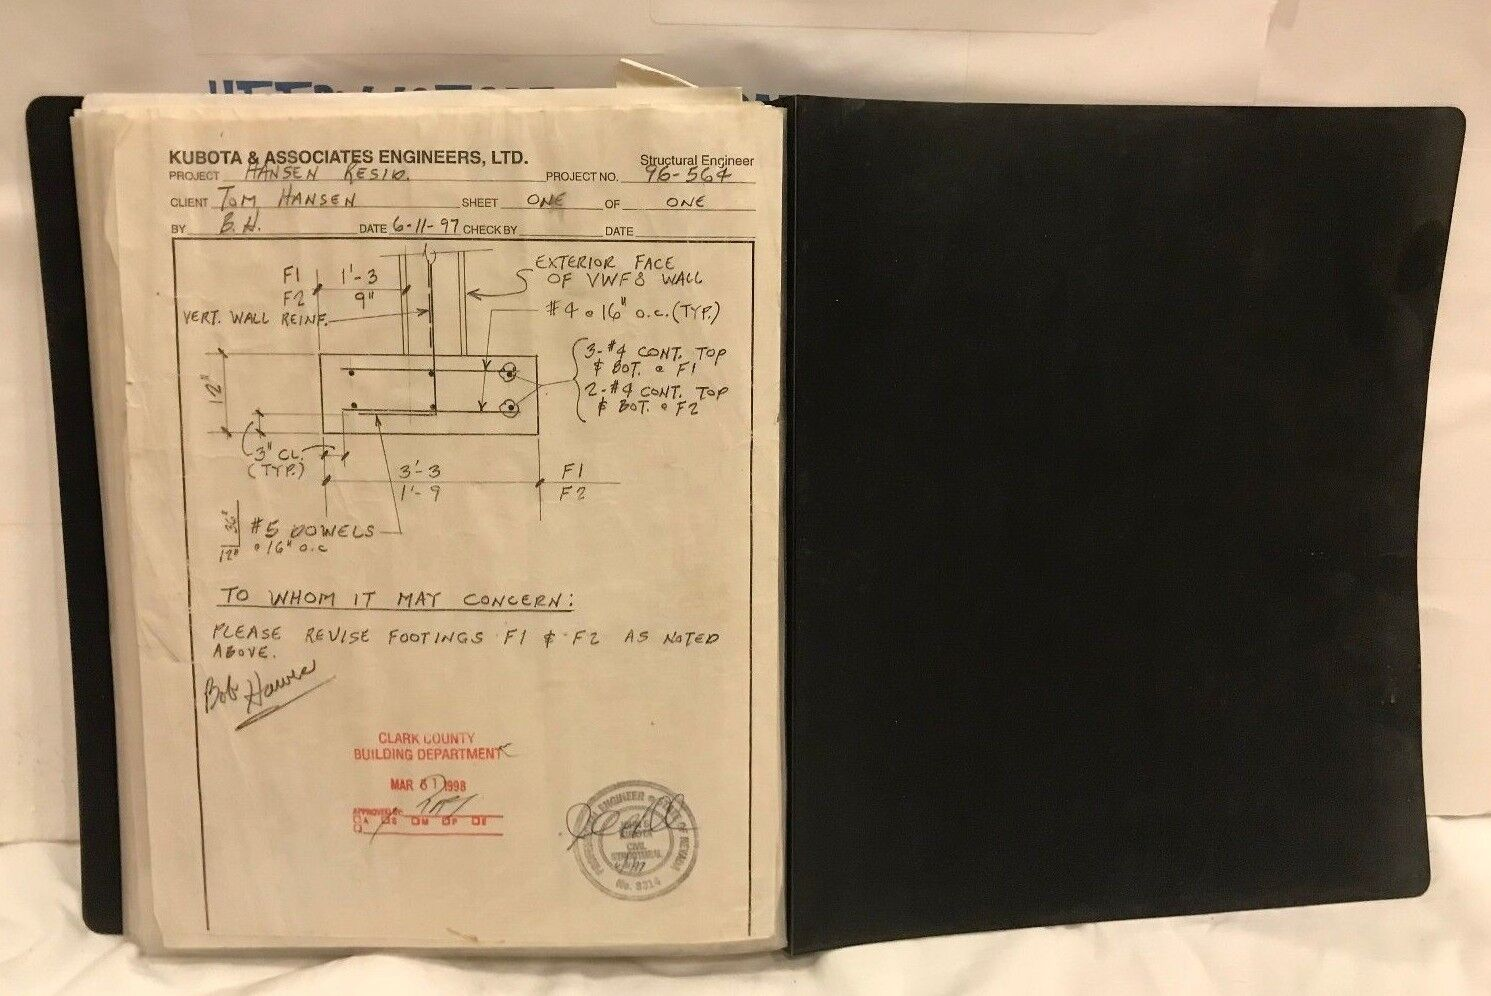 KUBOTA & ASSOCIATES ENGINEERS, BUILDING PLANS. IN HOMEMADE NOTEBOOK USED